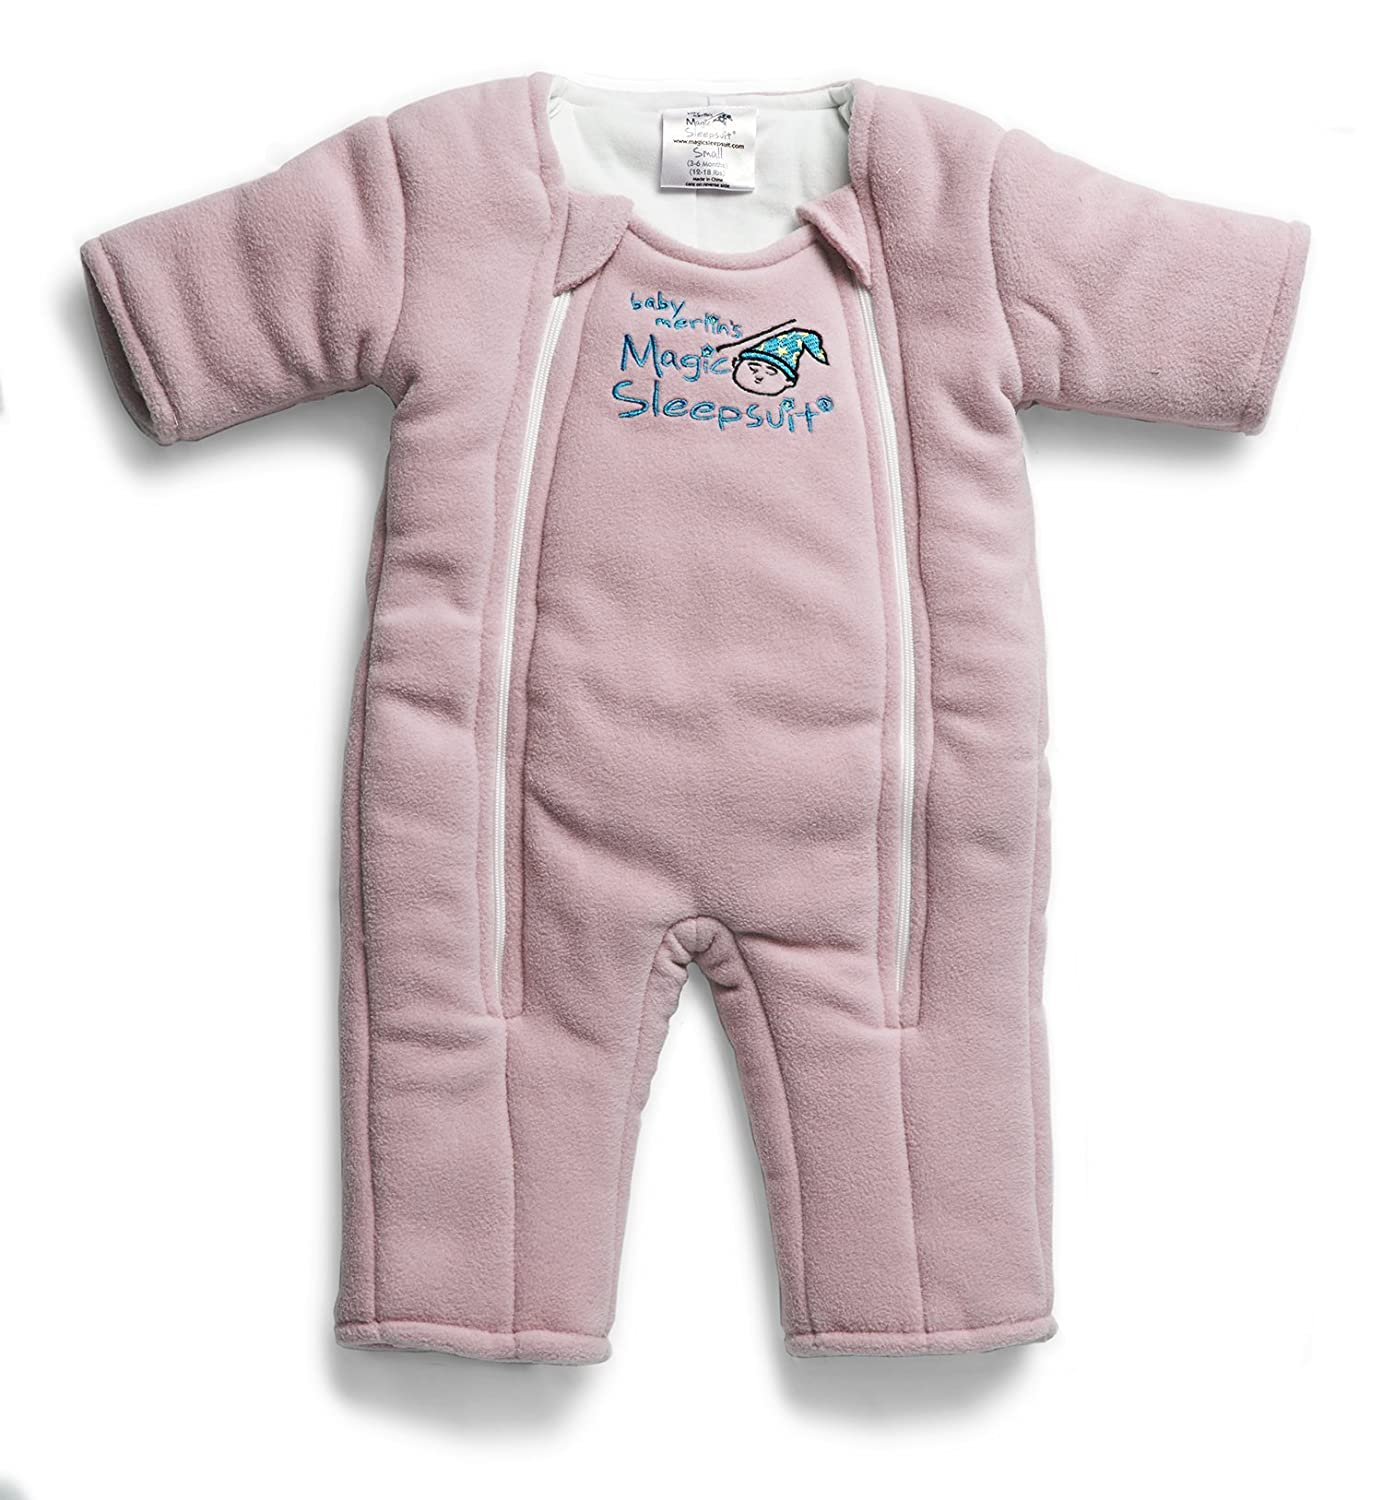 Baby Merlin's Magic Sleepsuit - Swaddle Transition Product - Microfleece - Pink 3-6 Months